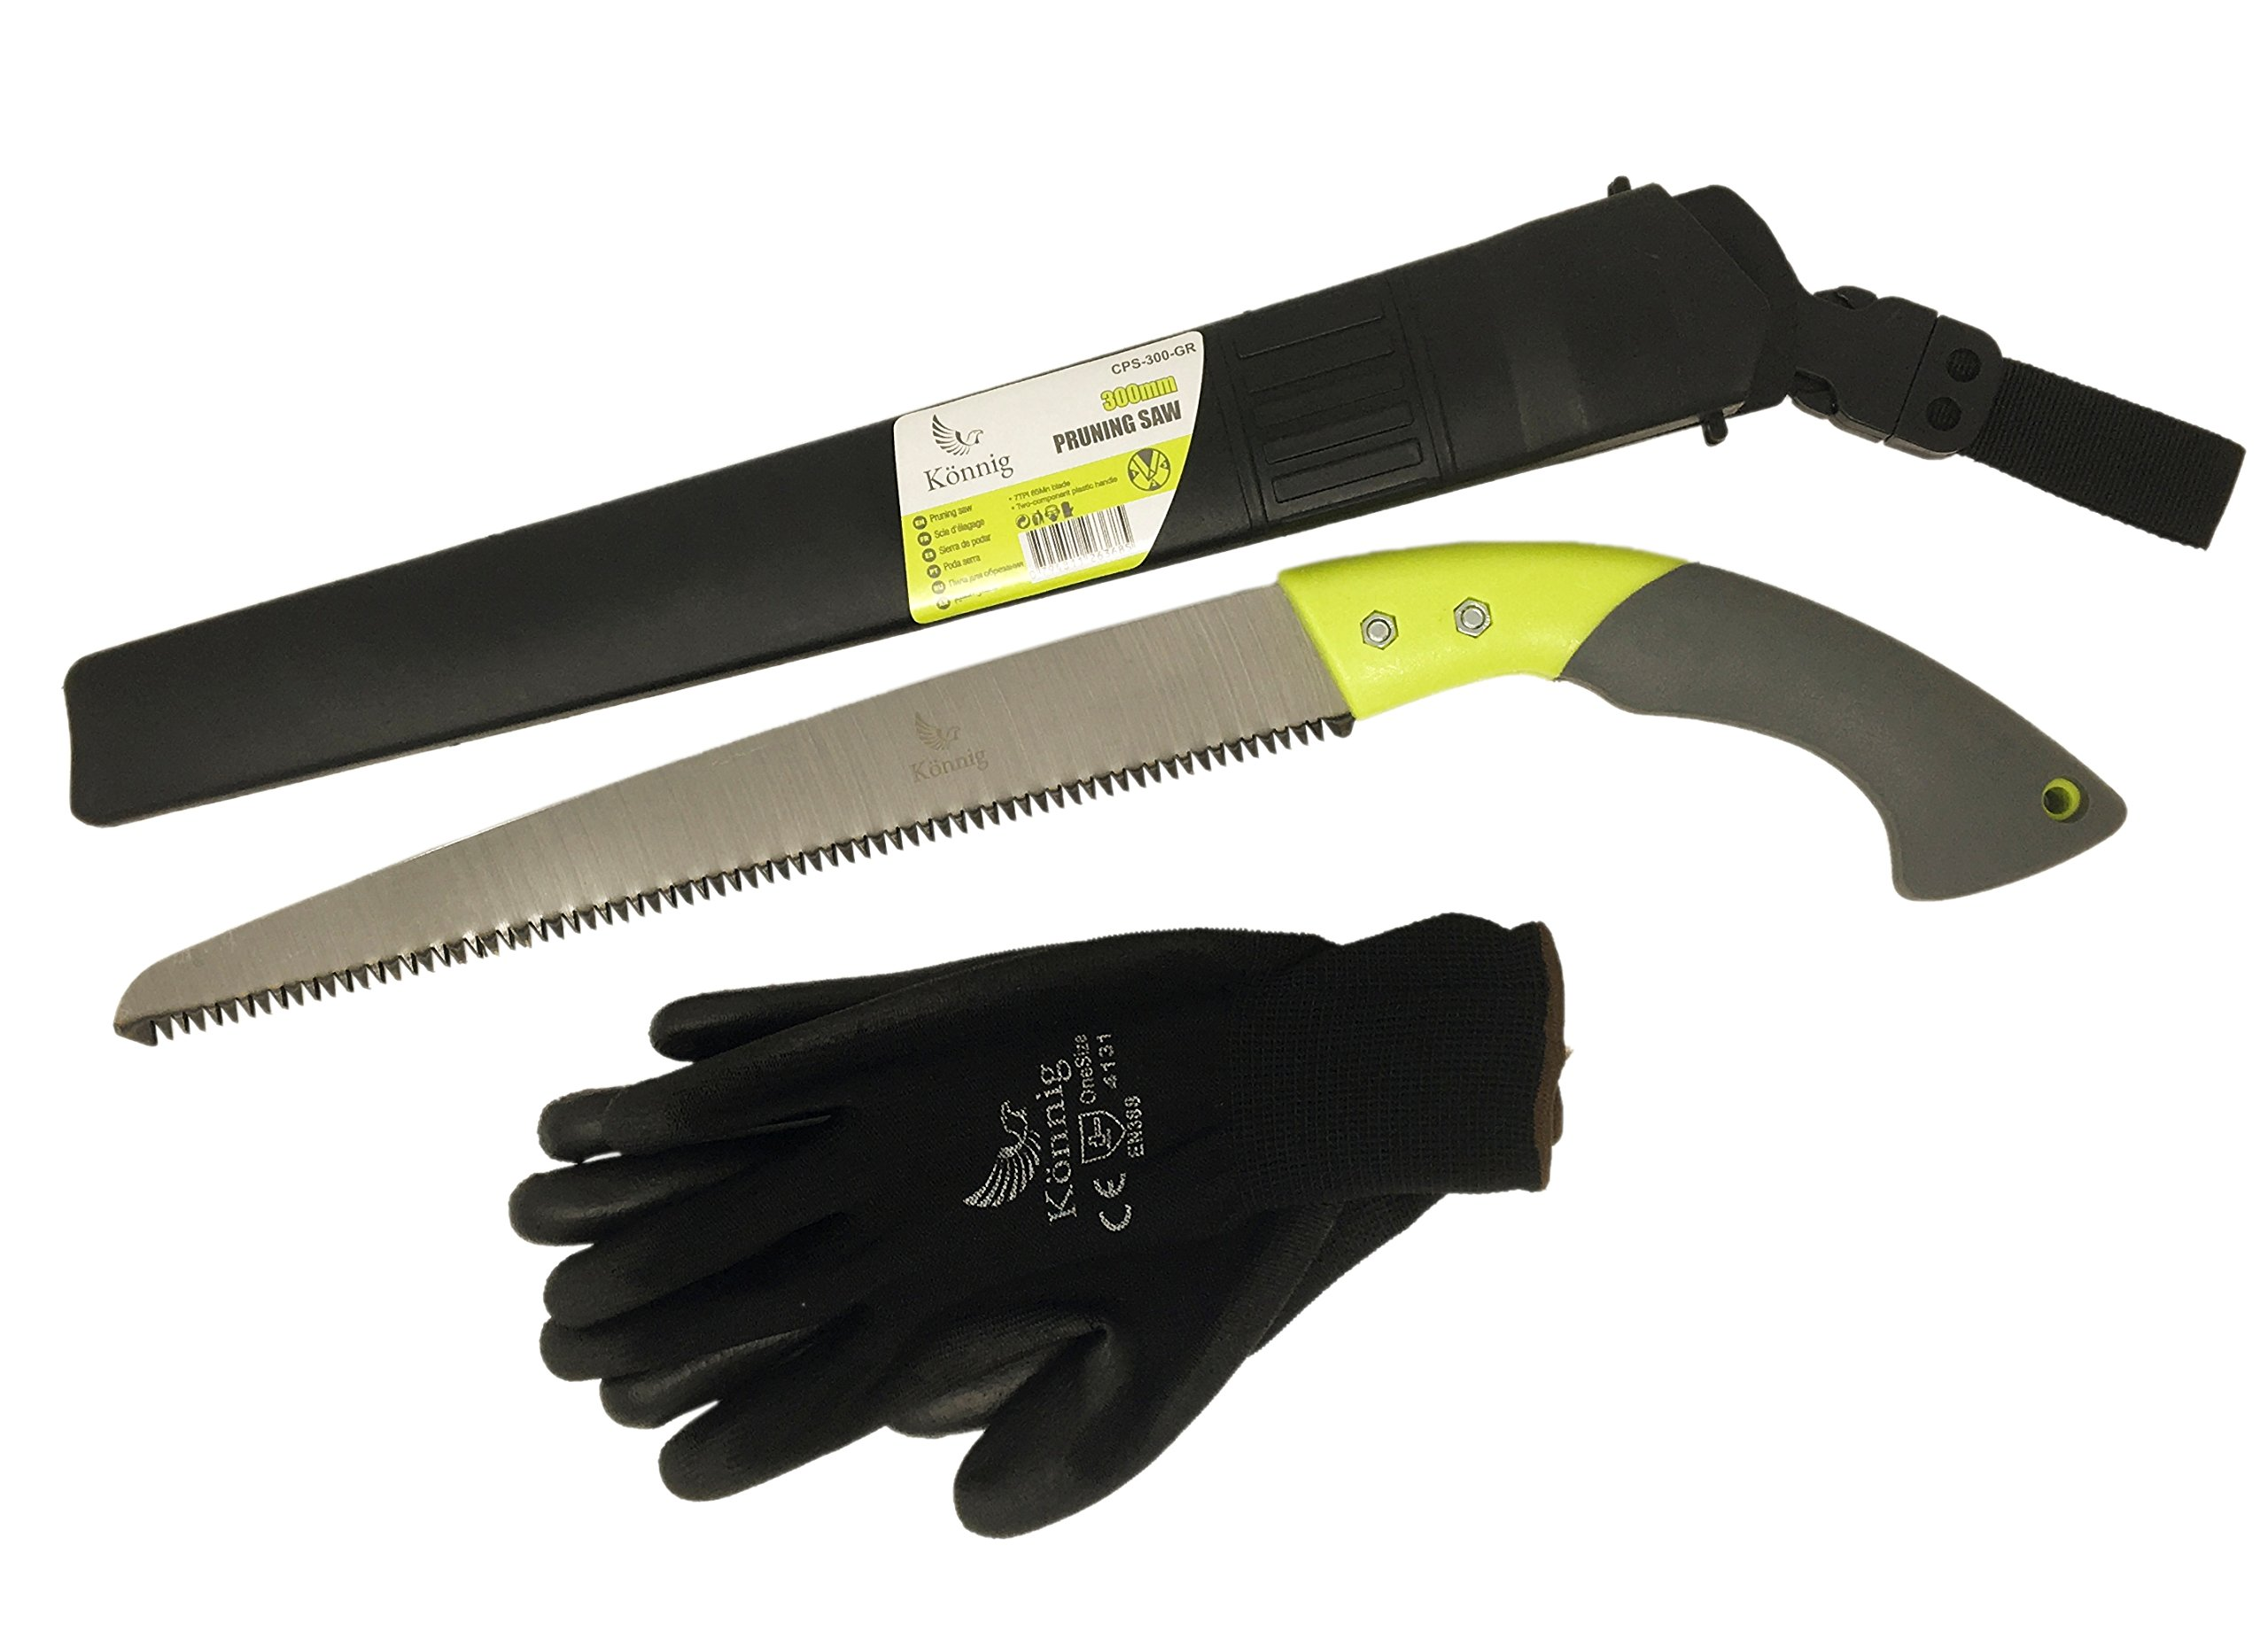 Könnig Heavy Duty Pruning Hand Saw (RAZOR SHARP 12'' Straight Steel Turbocut Pull-Action Blade) Comfort Handle with Blade Enclosure - Japanese Design - FREE Pair of Garden Gloves